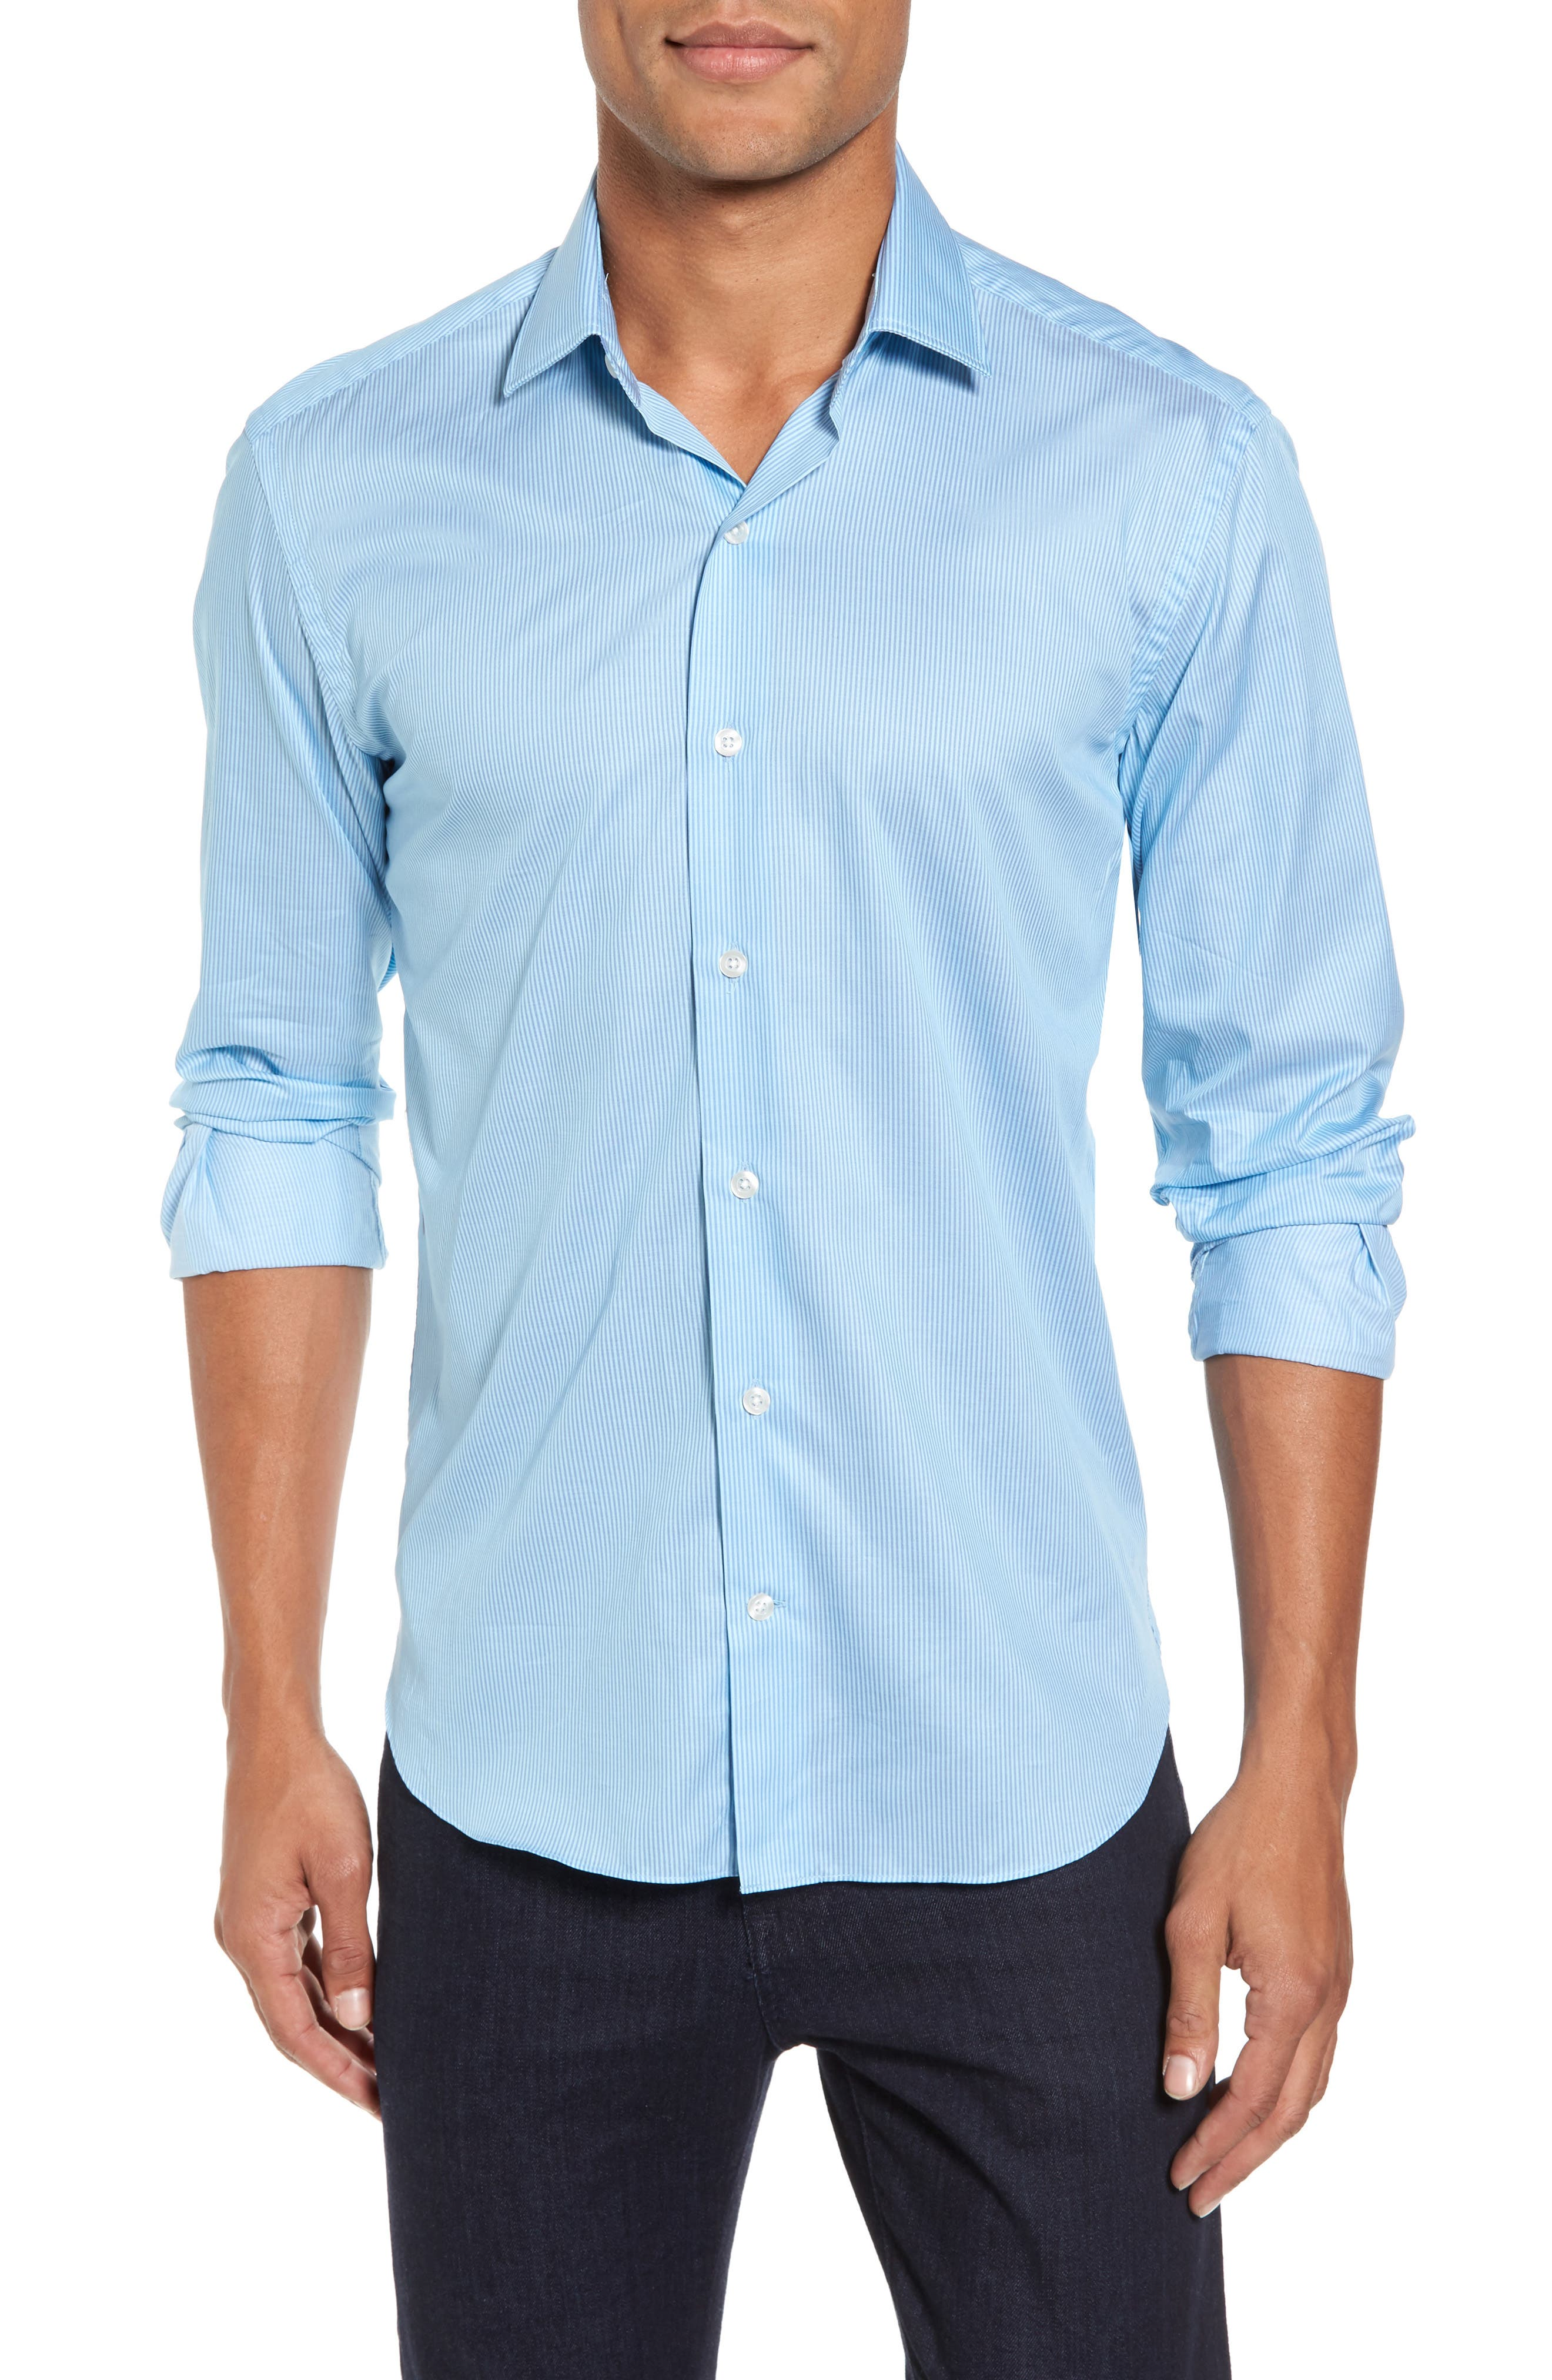 Alternate Image 1 Selected - Culturata Slim Fit Stripe Twill Sport Shirt